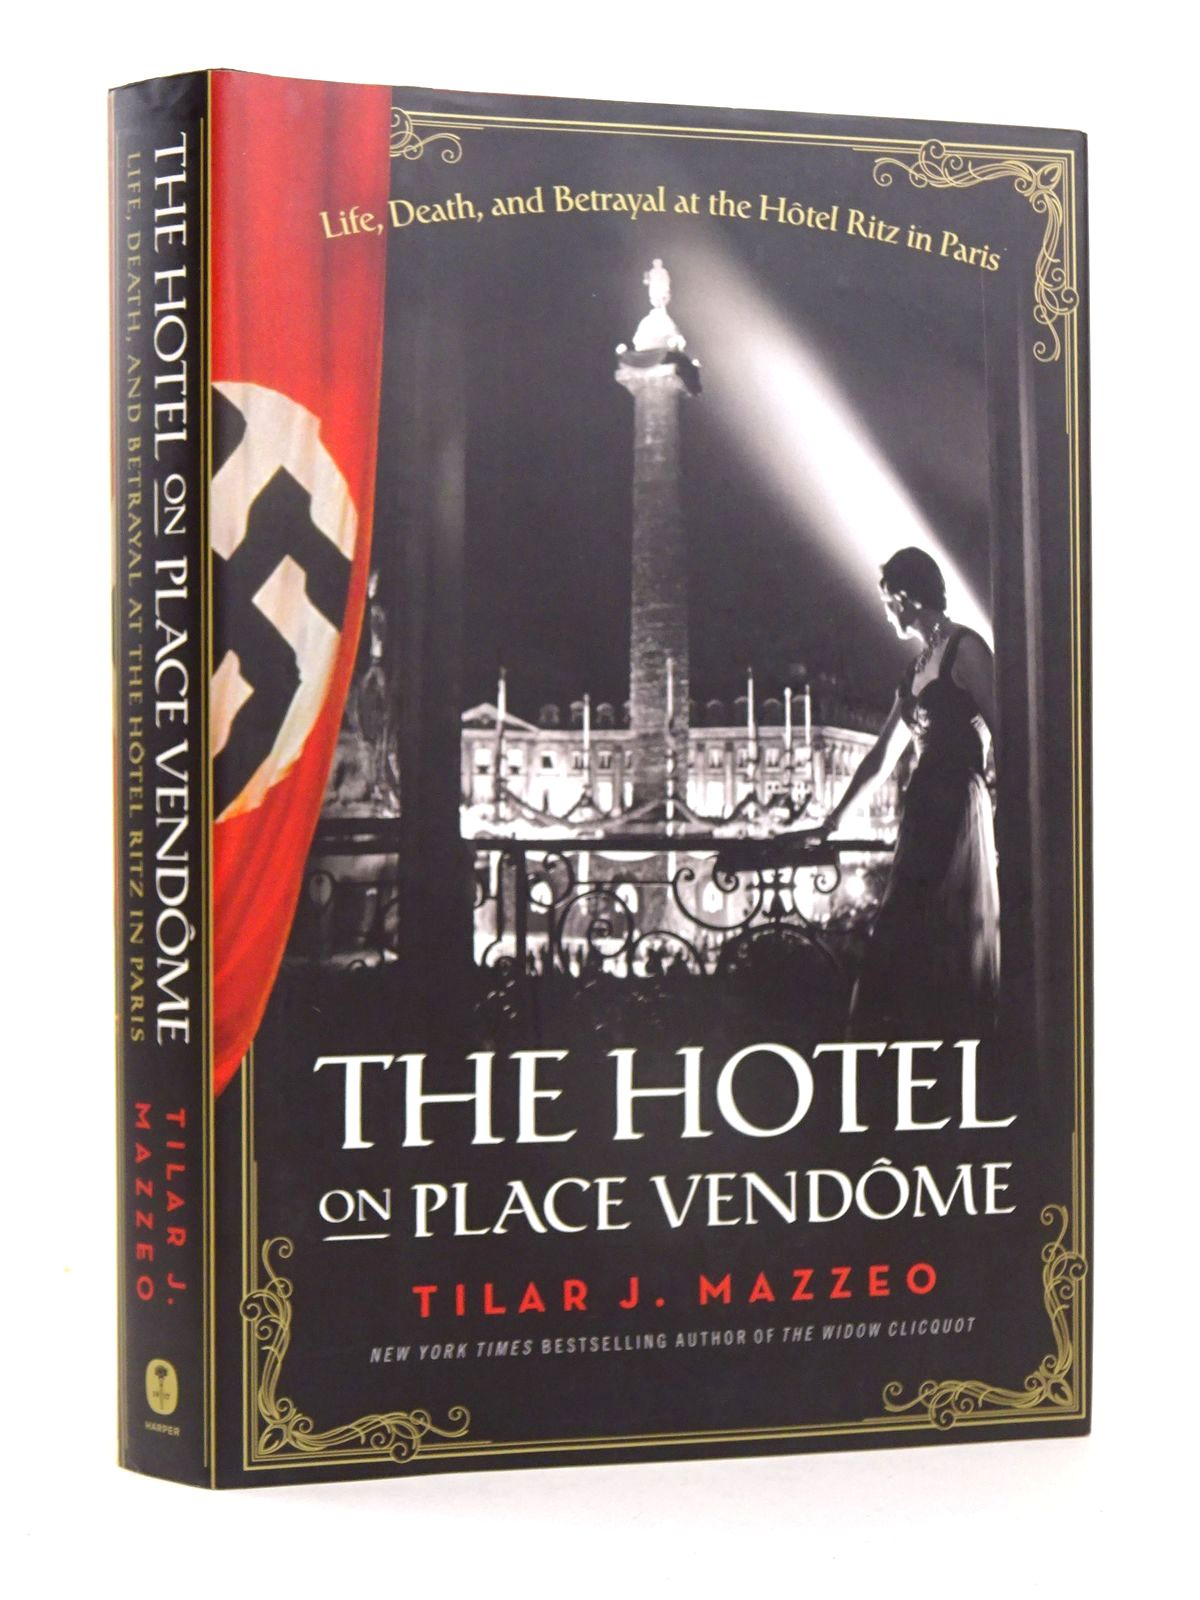 Photo of THE HOTEL ON PLACE VENDOME: LIFE, DEATH AND BETRAYAL AT THE HOTEL RITZ IN PARIS written by Mazzeo, Tilar J. published by Harper (STOCK CODE: 1818631)  for sale by Stella & Rose's Books